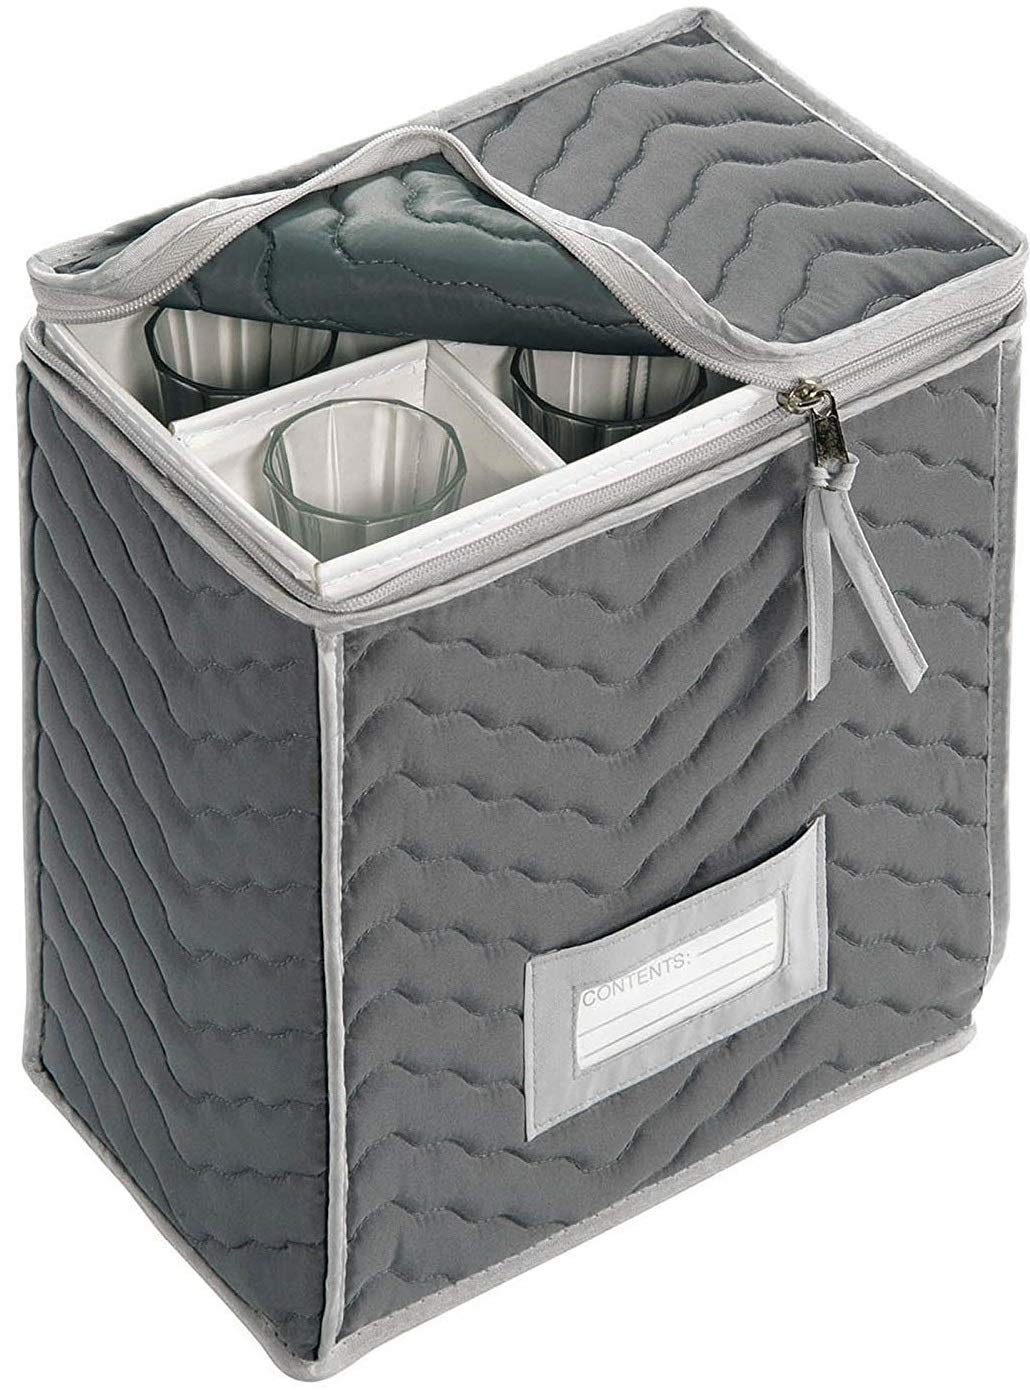 """Holds 6 Stemware Glasses Scratches And Cracks -Brown -11/""""X 9.25/""""X 6/"""" Richards Homewares 710961077 Protect Your Valuable Glassware from Dings Champagne Flute Glass Goblets Deluxe Storage Chest Quilted Microfiber"""